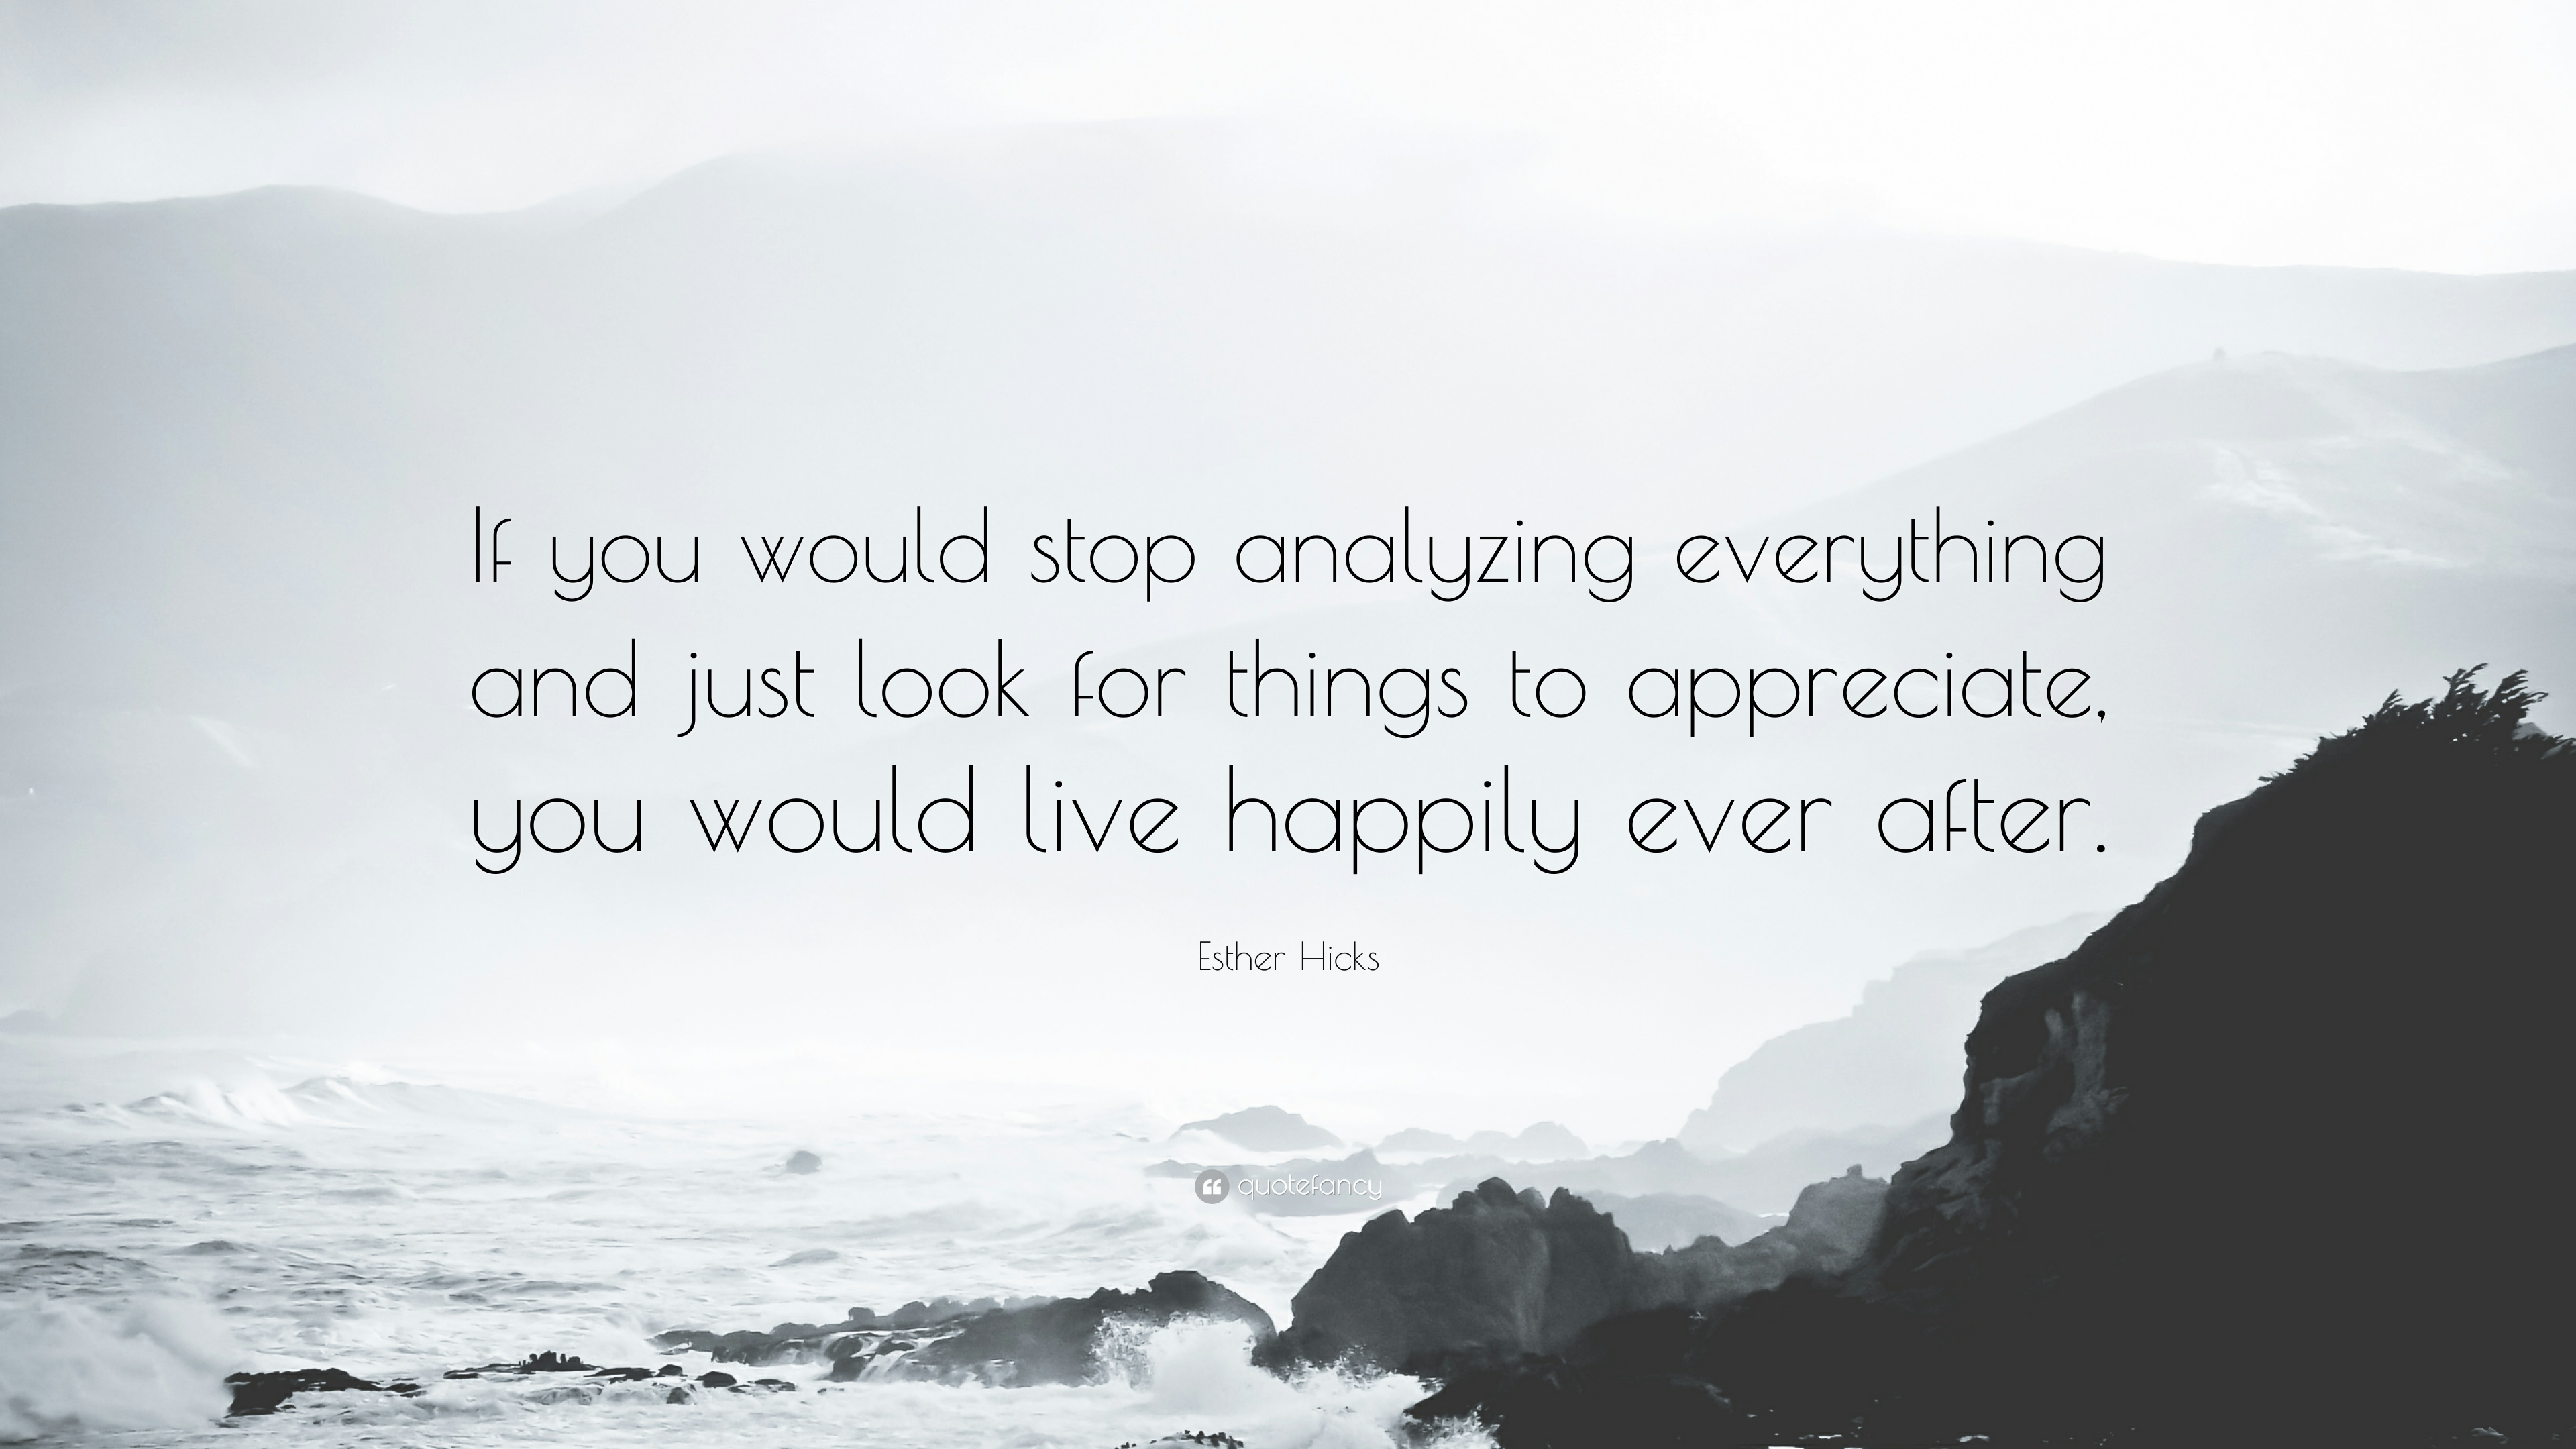 how to stop analyzing everything